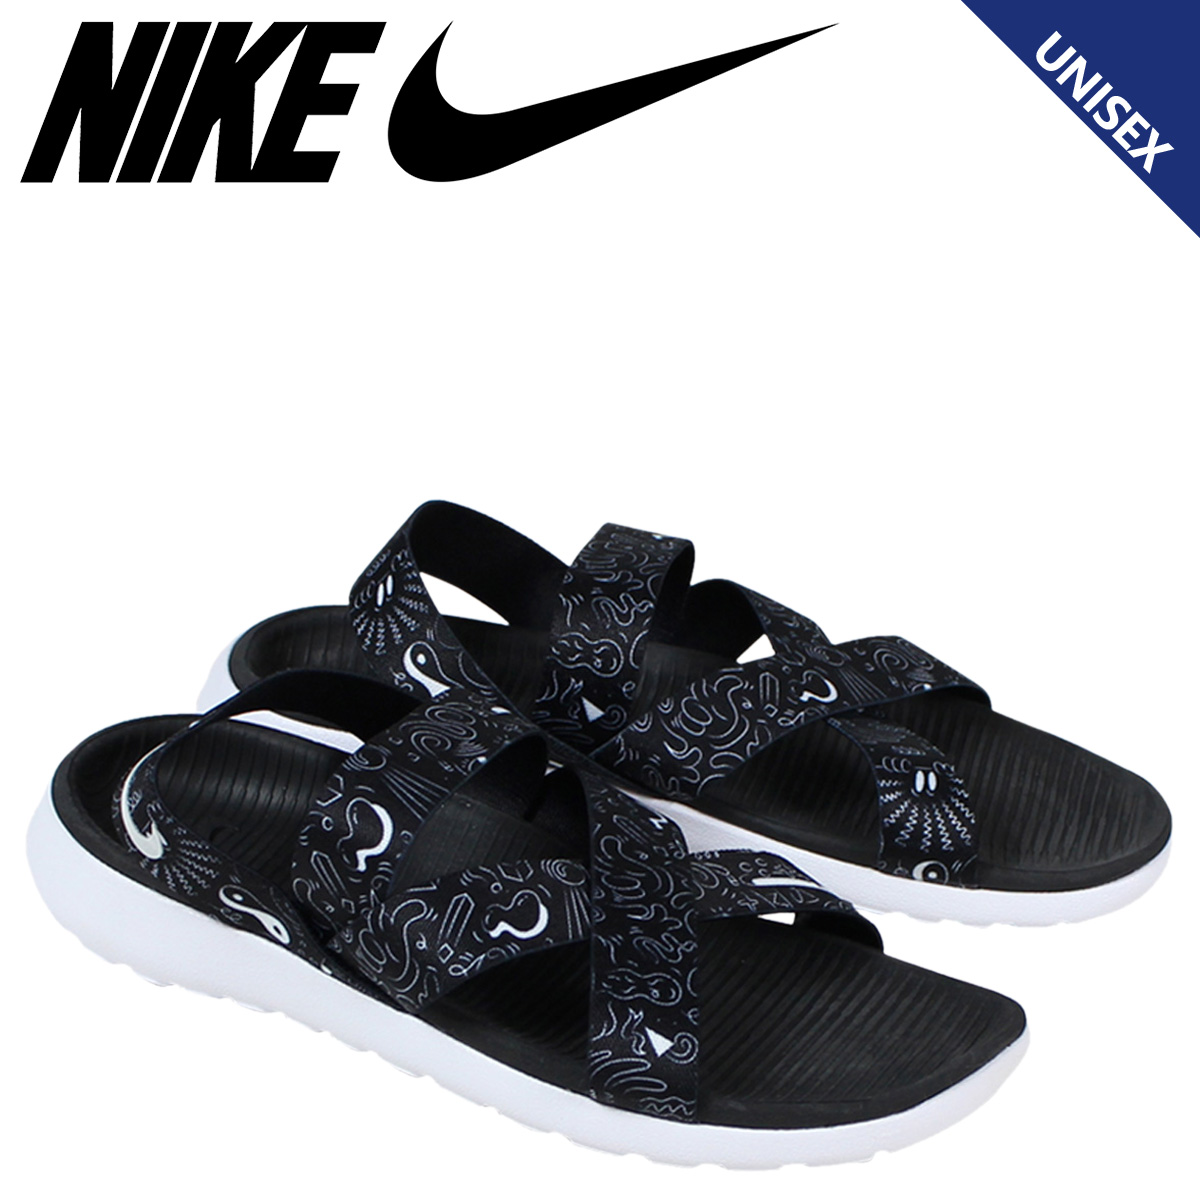 first rate ba623 120b5 NIKE Nike Losone Sandals ladies WMNS ROSHE ONE SANDAL 832644-011 mens shoes  black